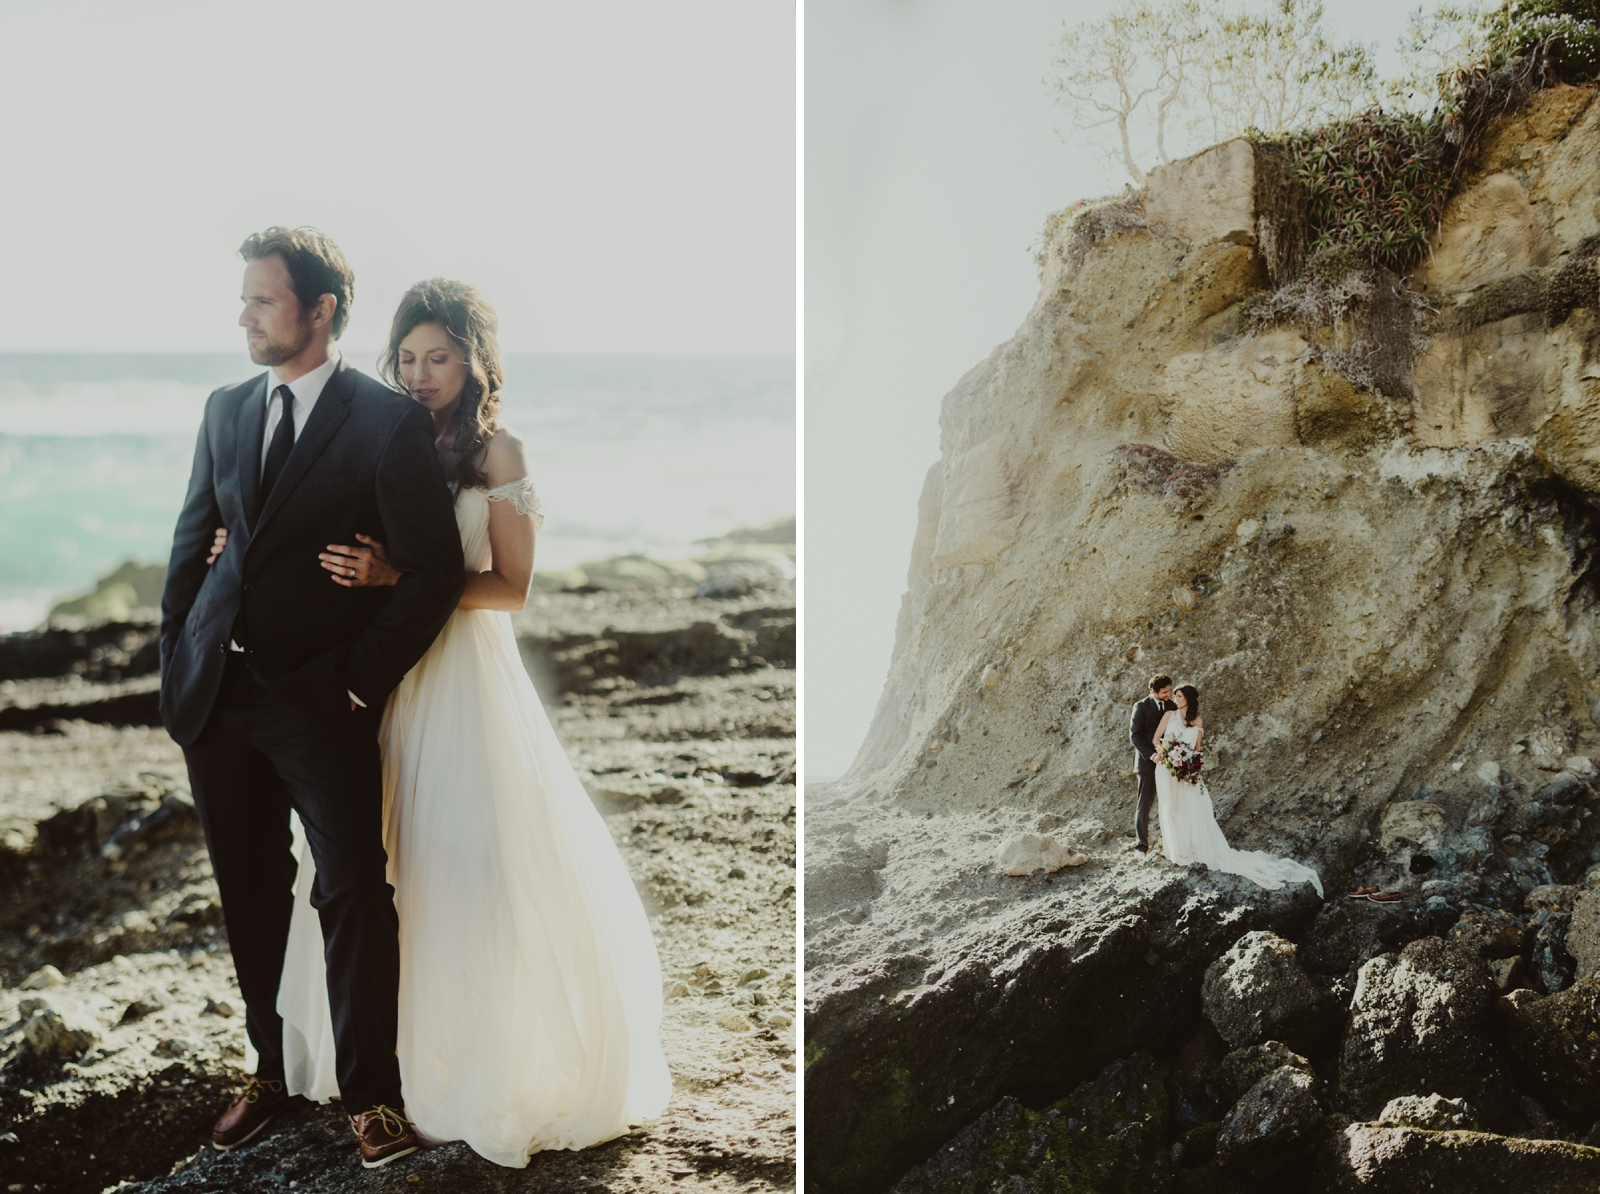 Kevin+Angie-Married-Blog-00034.jpg